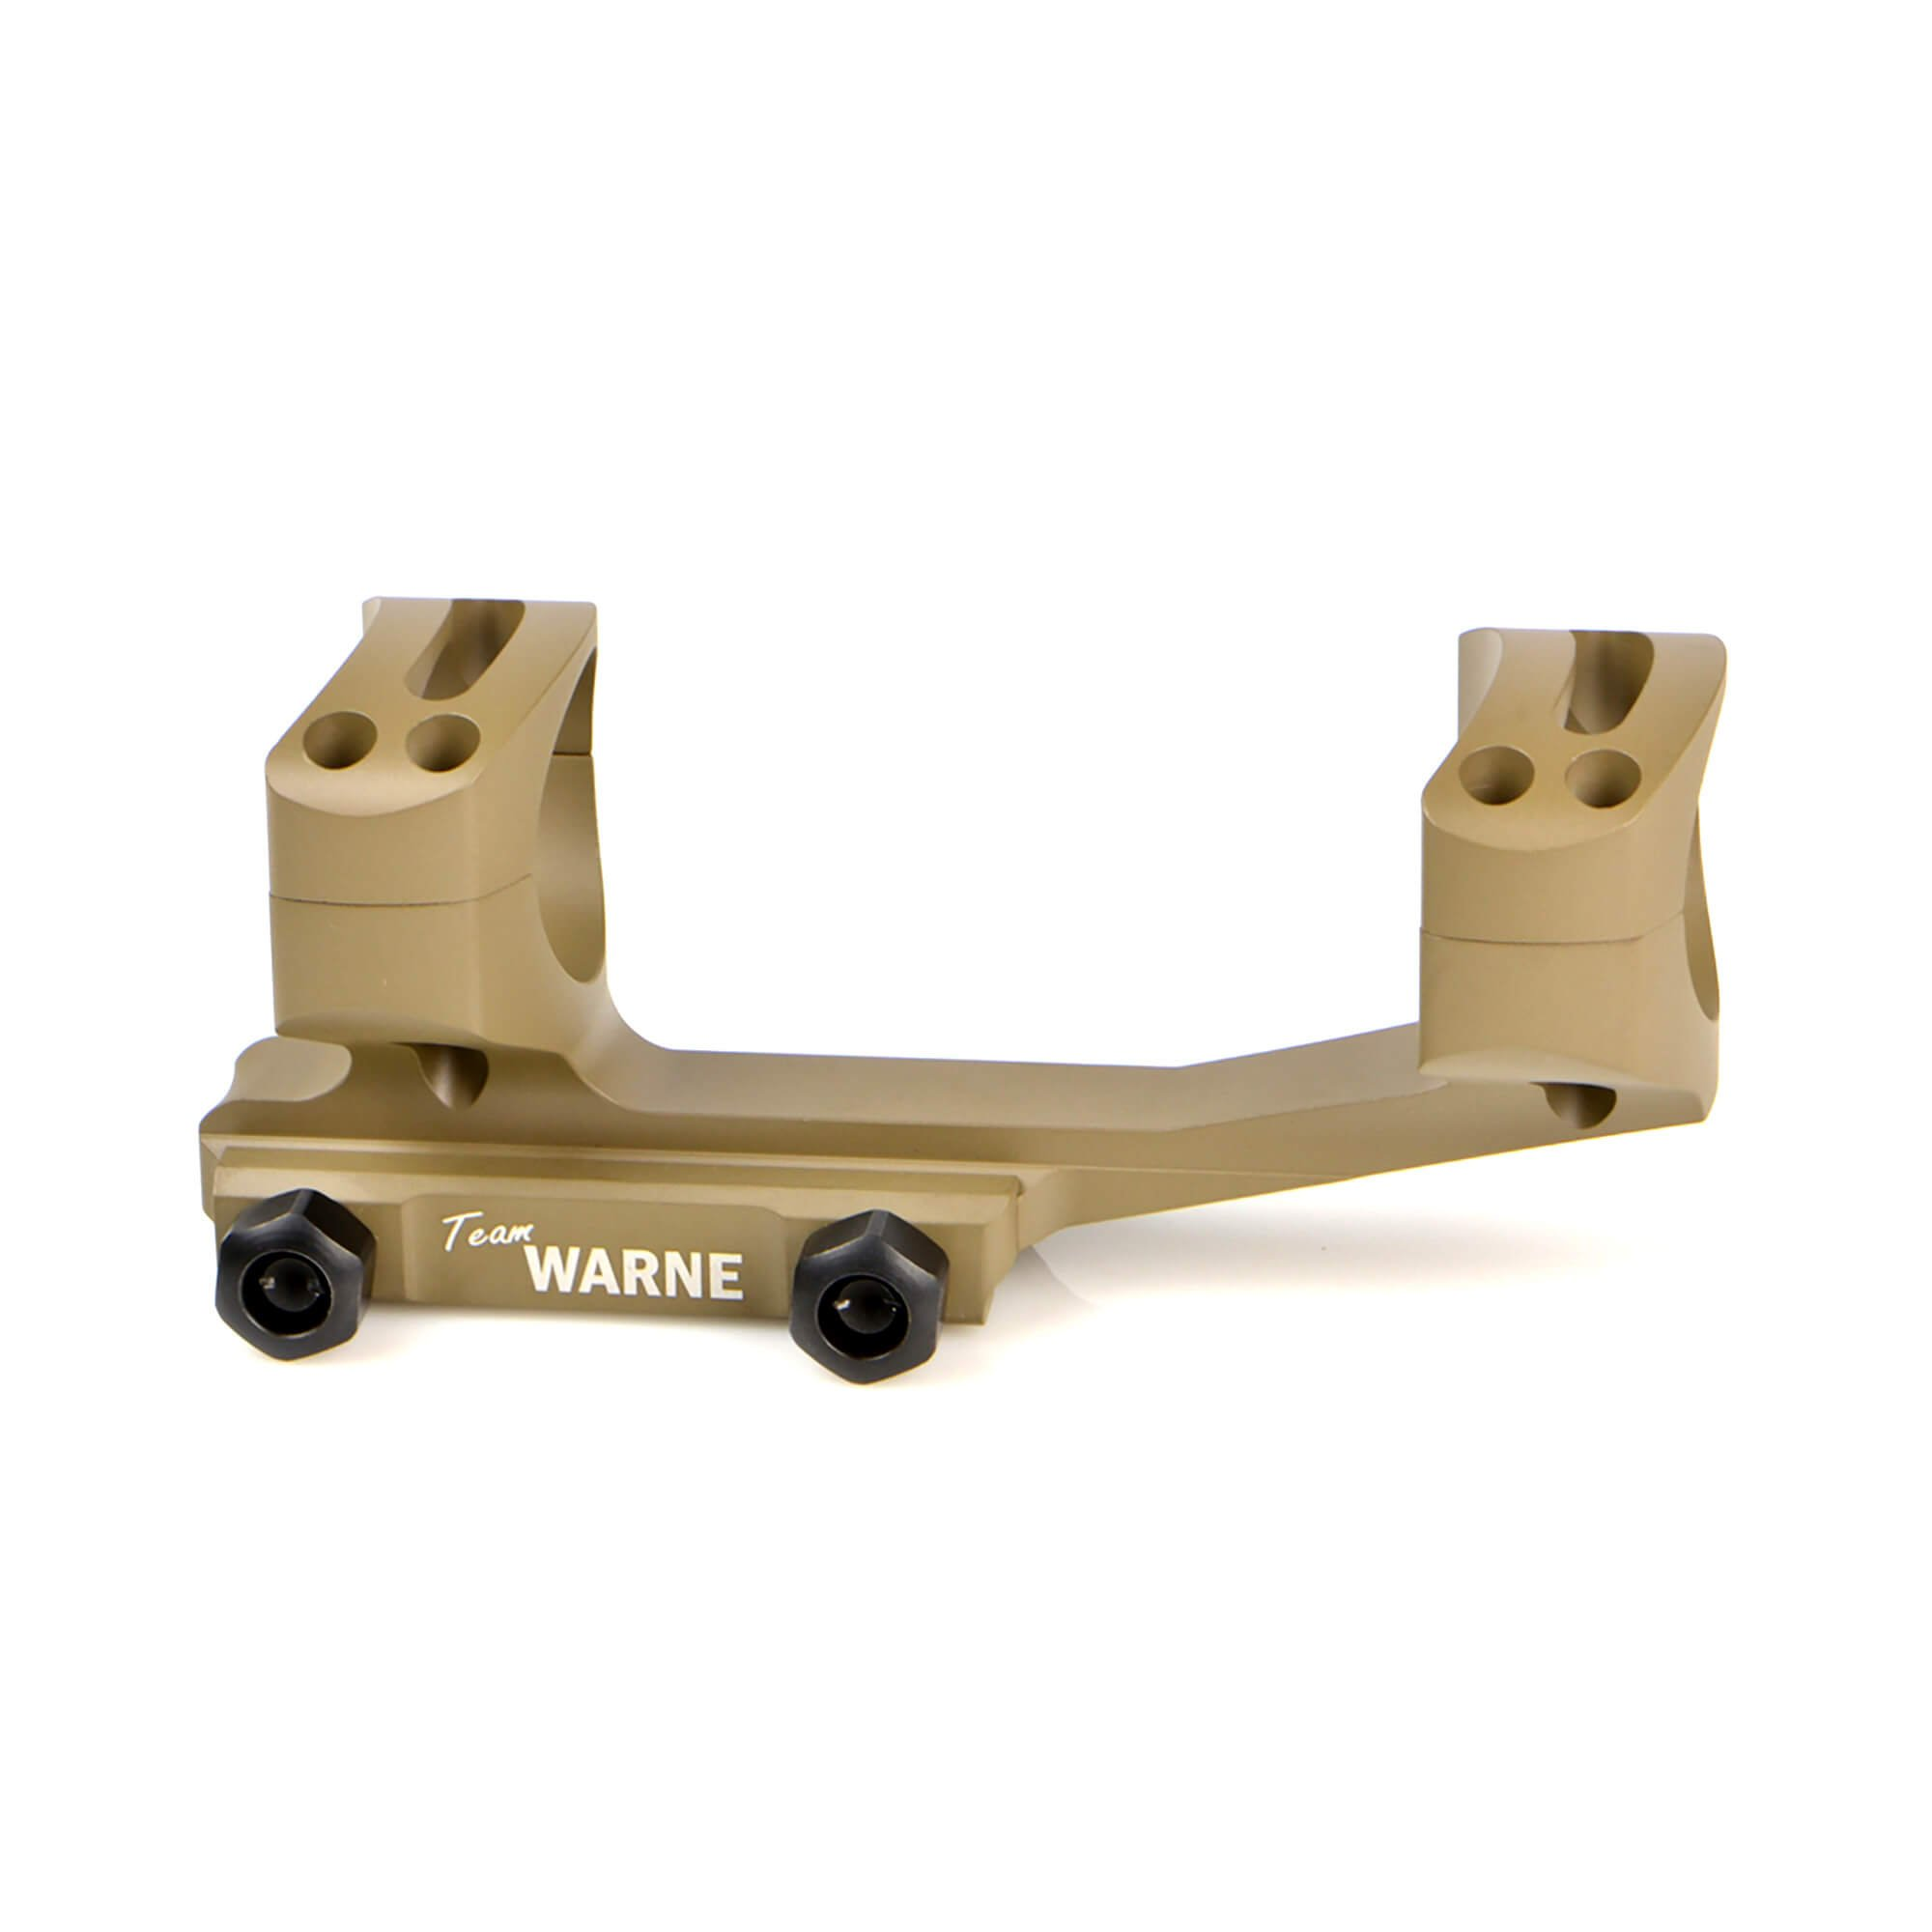 Warne Scope Mounts Gen 2 Extended Skeletonized 1'' Mount, Dark Earth by Warne Scope Mounts